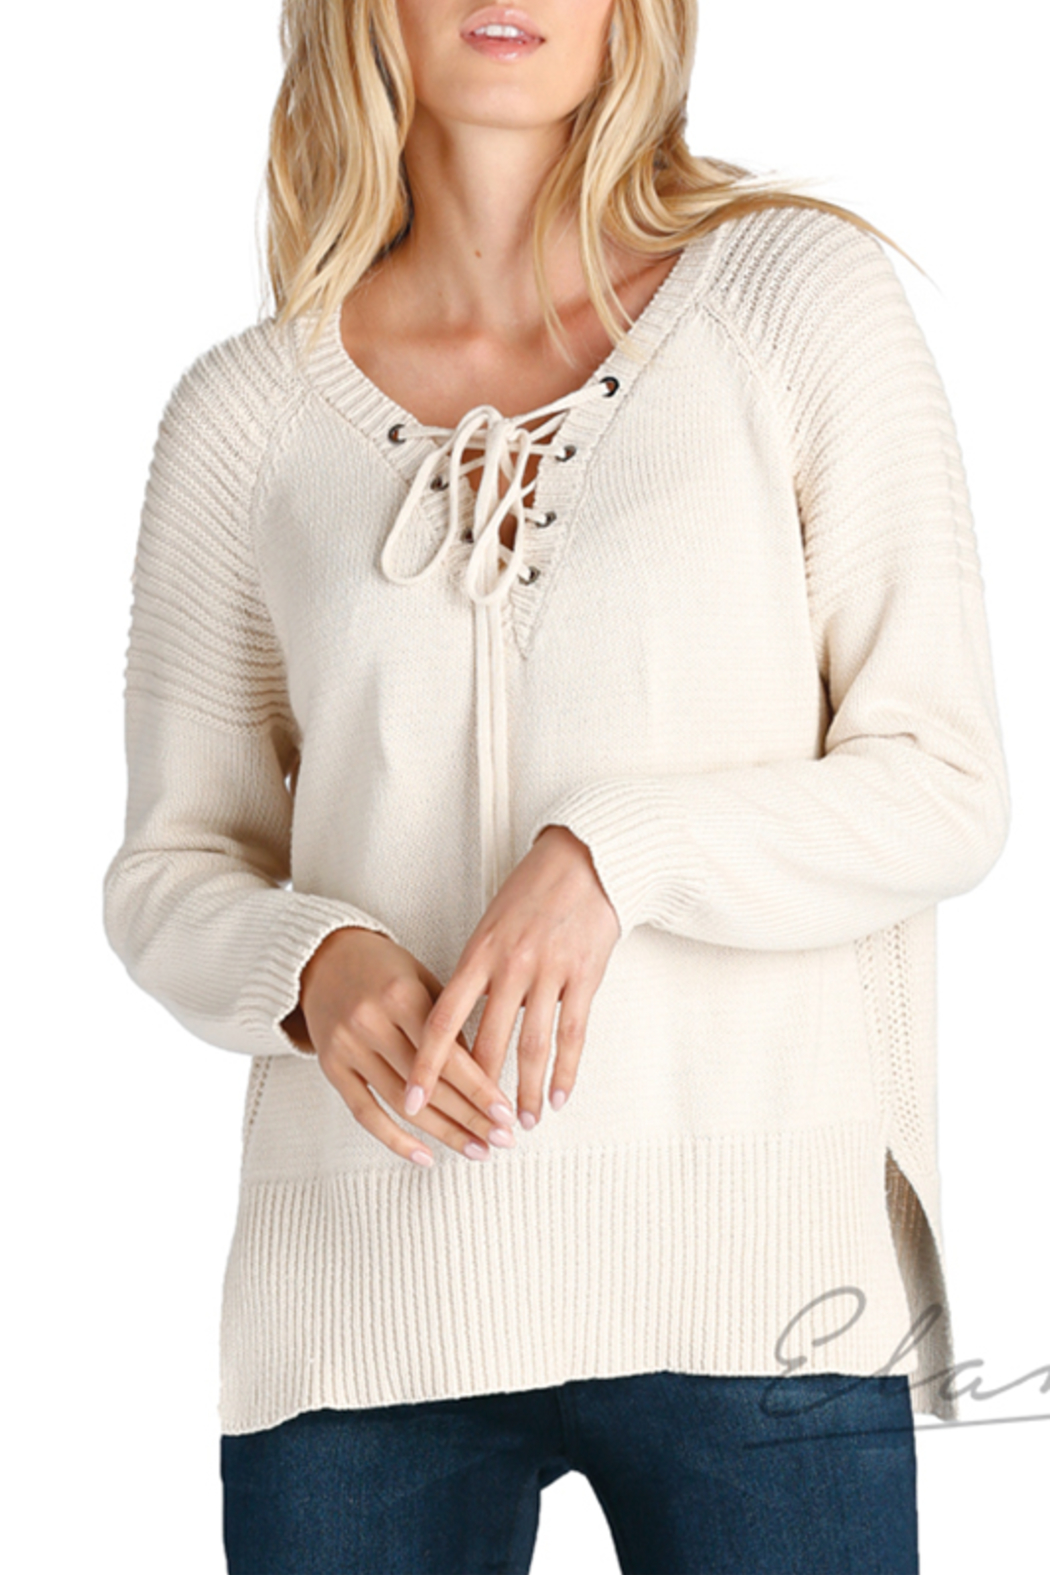 Elan Lace-Up Neck Sweater - Front Cropped Image